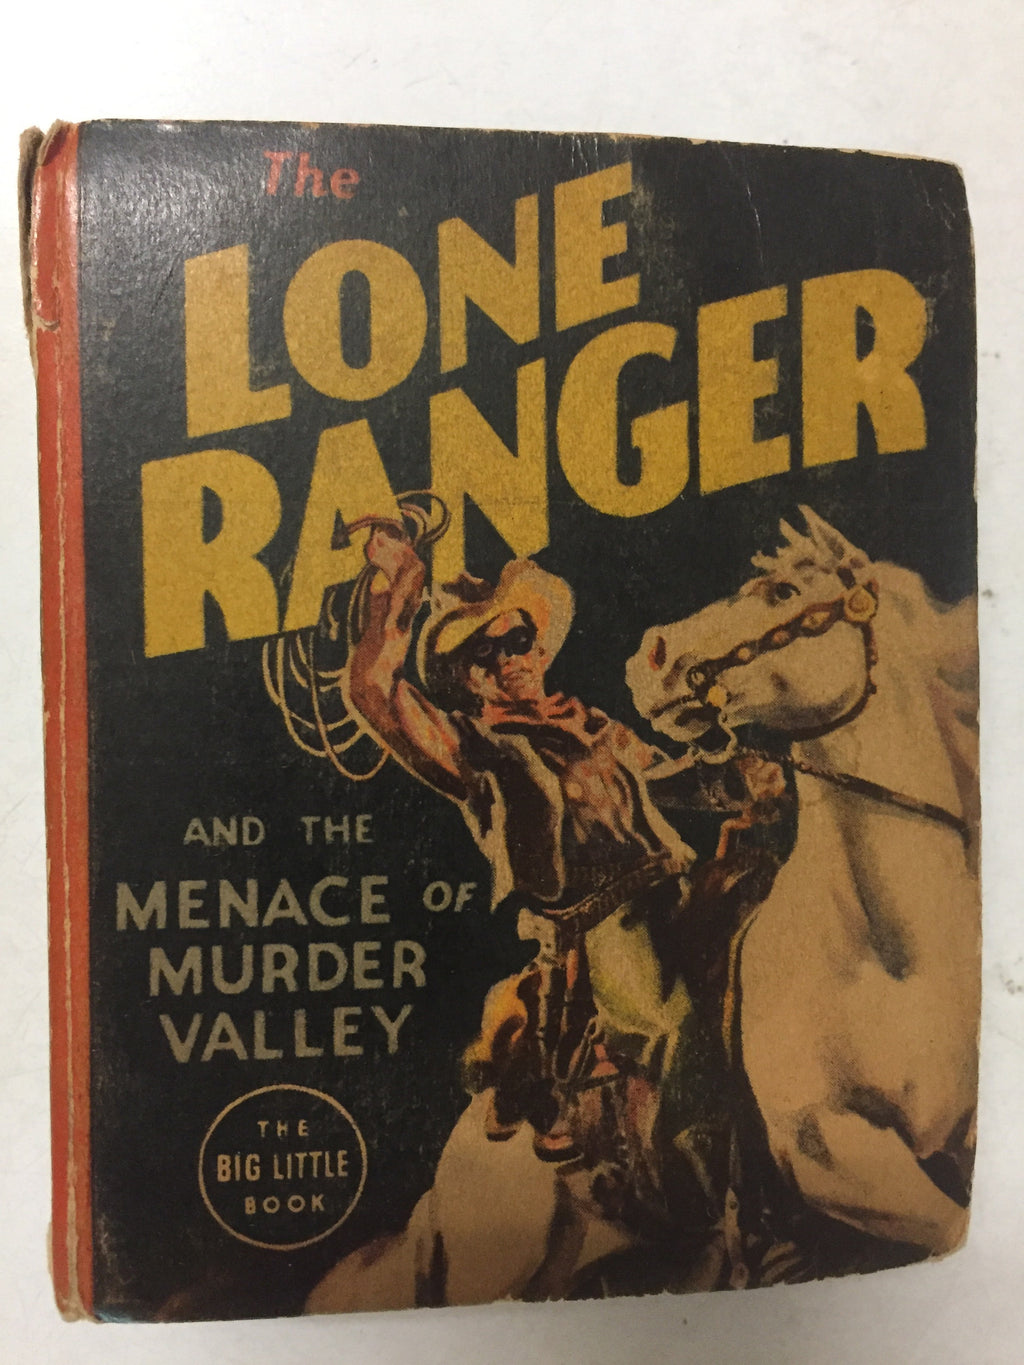 The Lone Ranger and the Menace of Murder Valley - Slickcatbooks